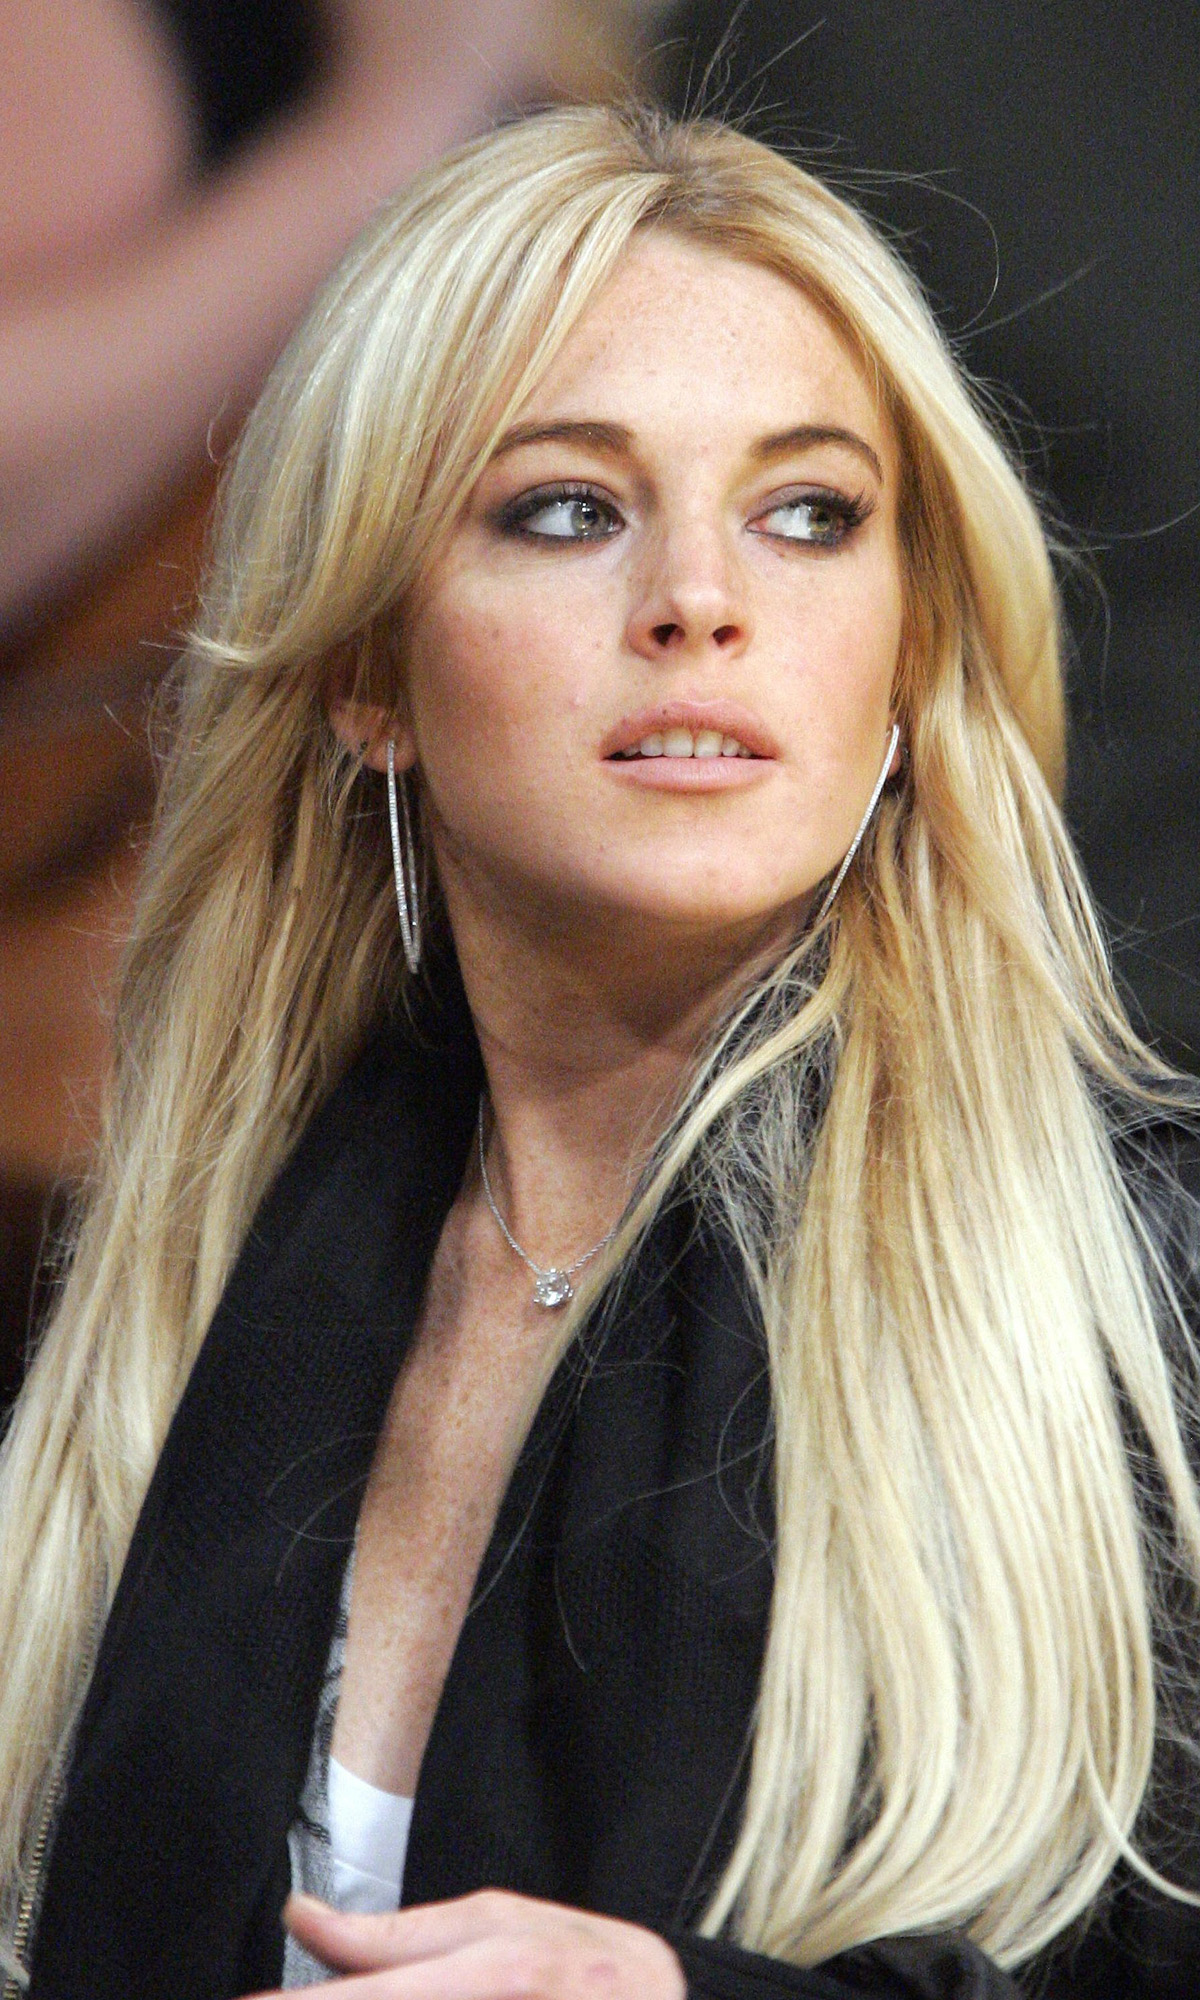 ** FILE ** Actress Lindsay Lohan is seen at the Los Angeles Lakers game against the Orlando Magic, in this Dec. 2, 2007, file photo in Los Angeles. Sales of Britney Spears-related eBay items topped those for Paris Hilton and Lindsay Lohan in 2007, according to the popular online auction site. There were 34,345 Spears-related items sold this year  while 27,377 items associated with Hilton were purchased. Lohan\'s name was only associated with 8,099 items sold. (AP Photo/Mark J. Terrill, file)